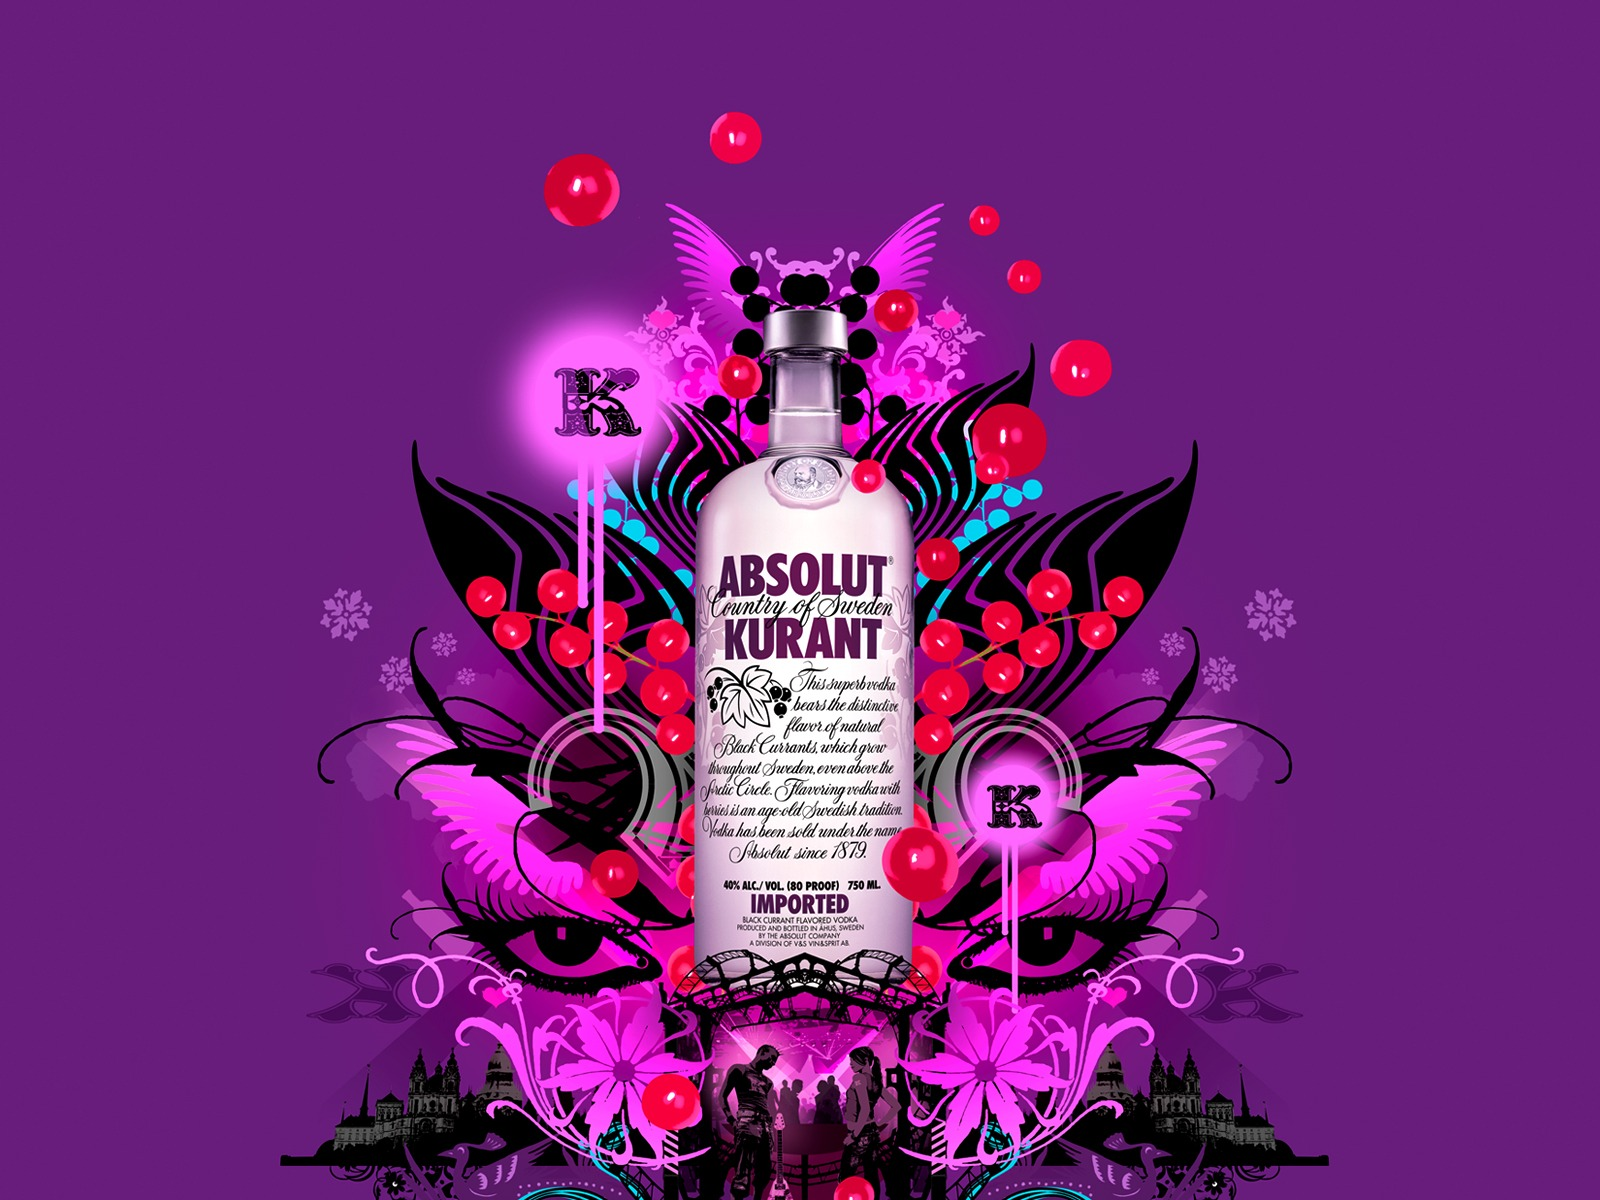 Absolut Tapety louhu Reklama #11 - 1600x1200